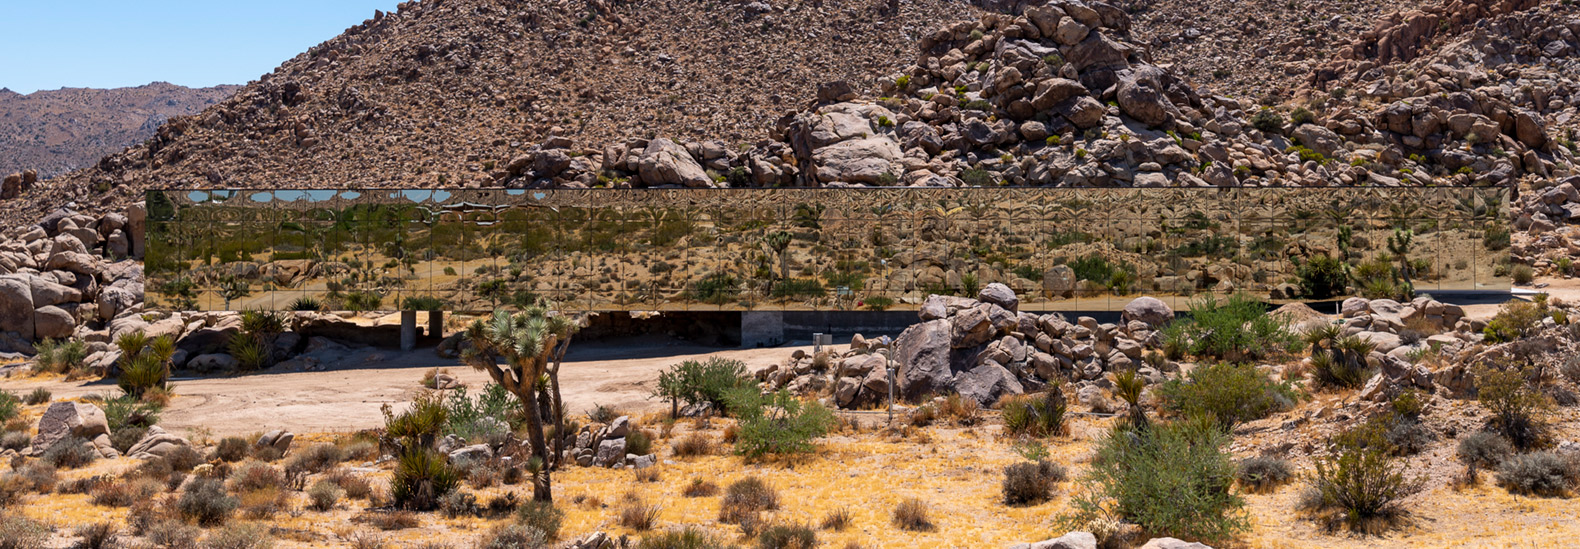 The Invisible House is a reflective building that mirrors its desert surroundings